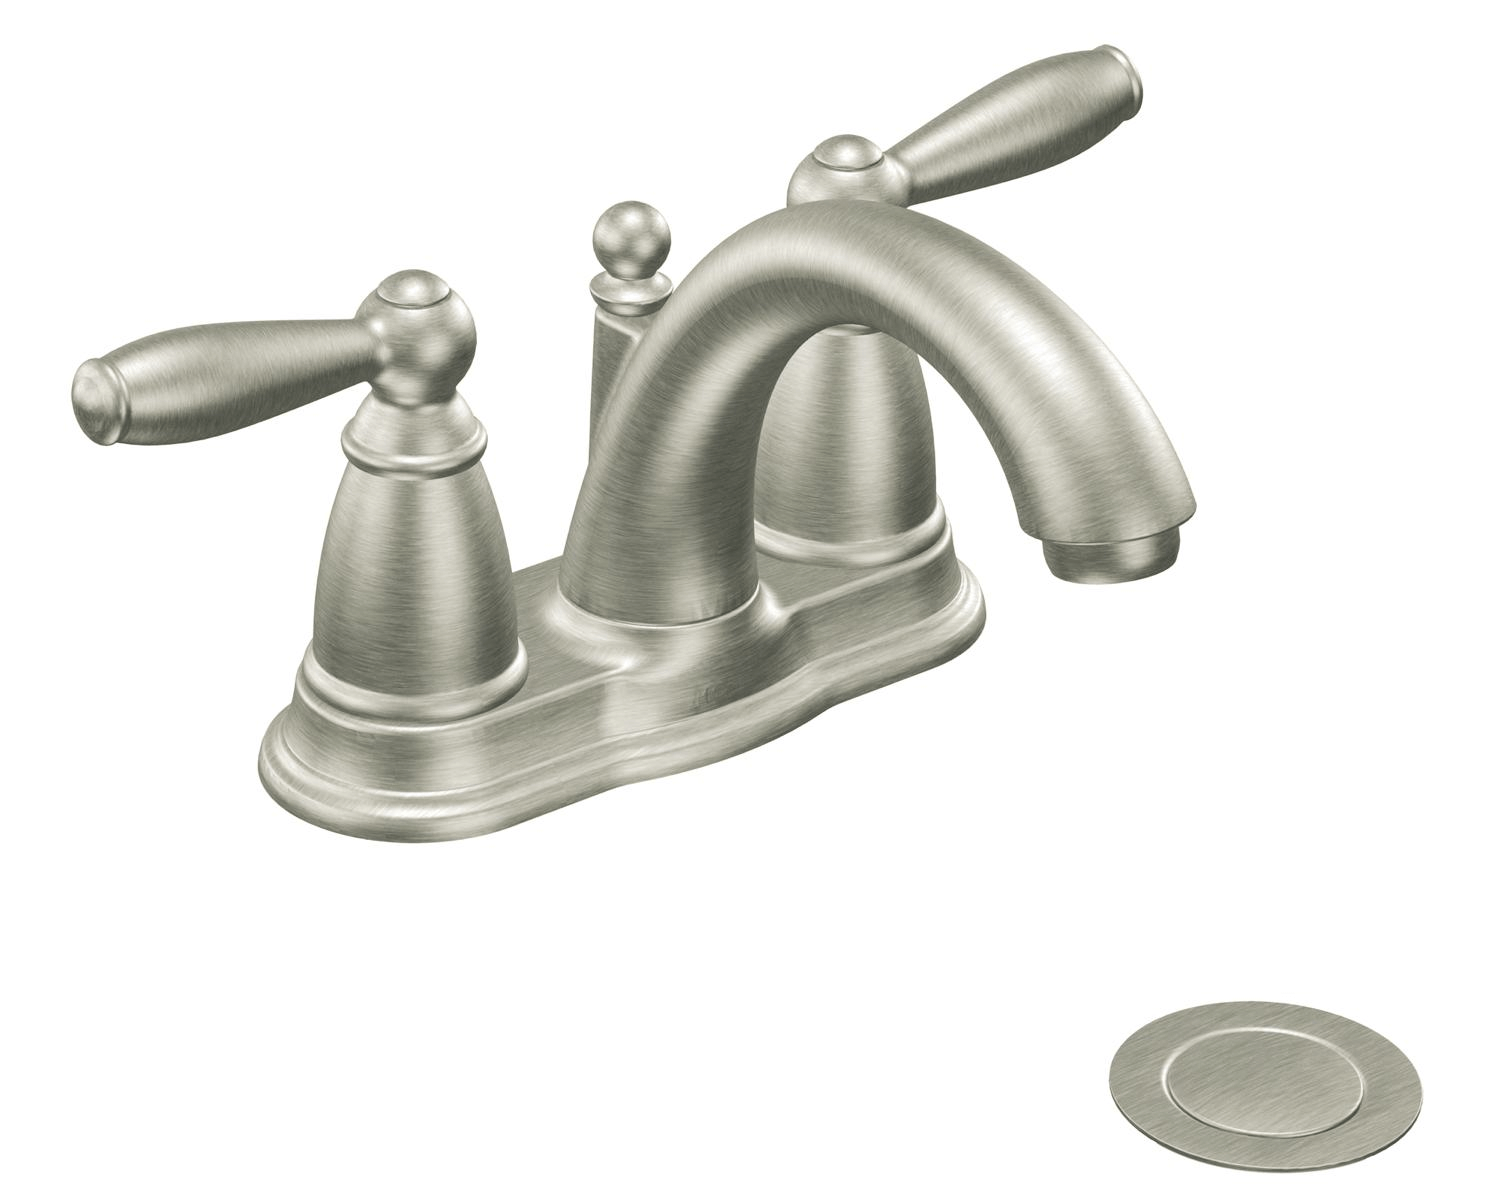 Ways to Keep Bathroom Faucets Brushed Nickel Shiny